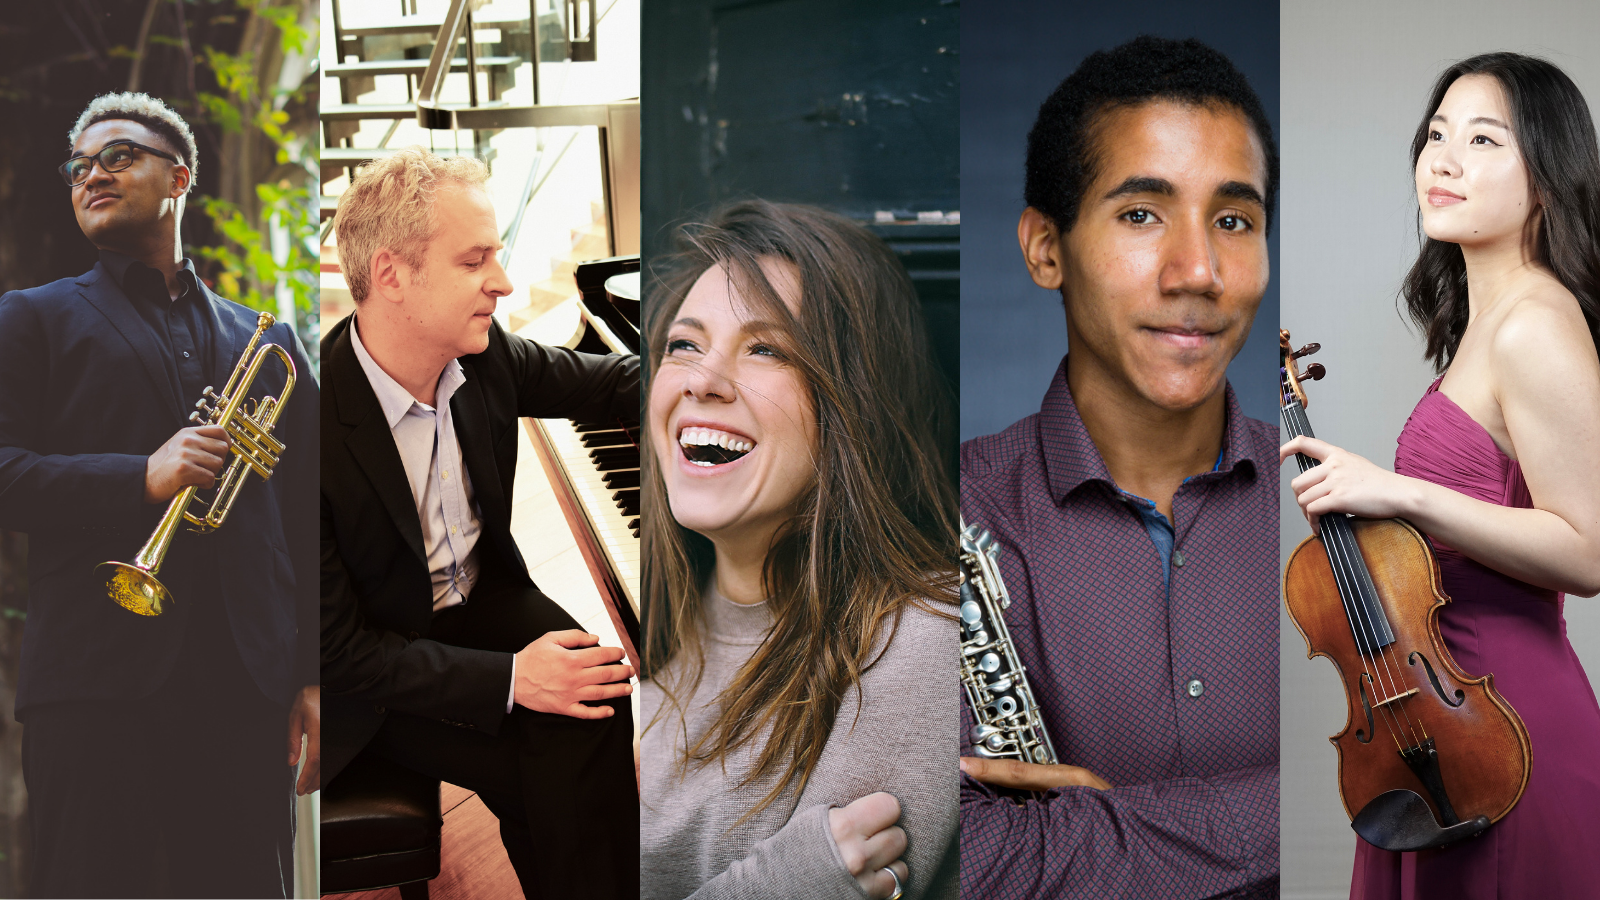 A collage of a number of musicians holding various instruments